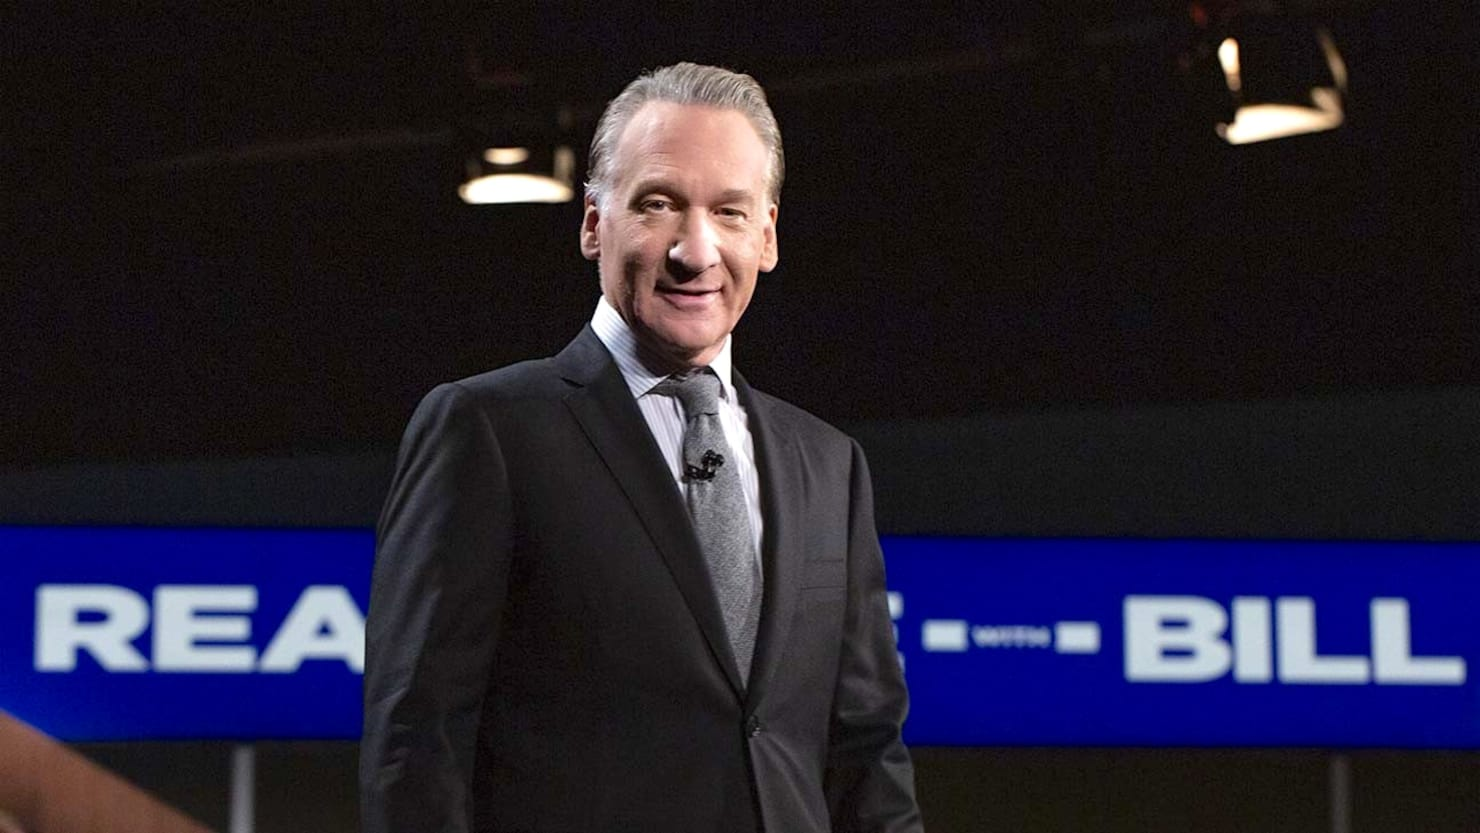 Bill Maher: Racism in America Is Exaggerated